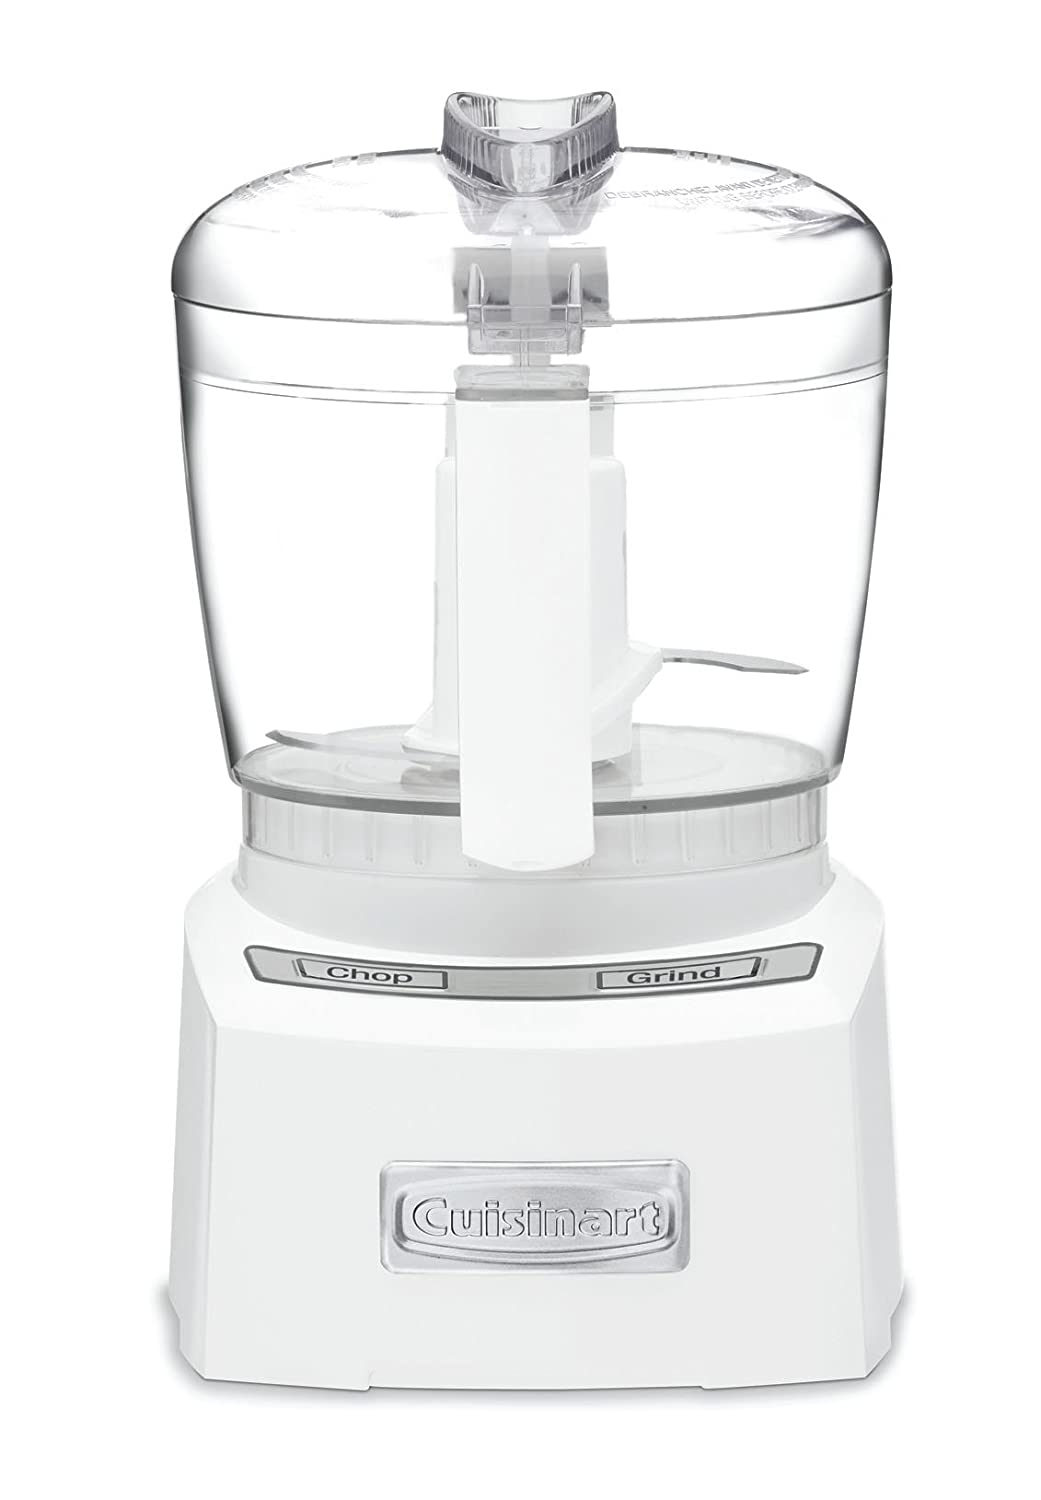 Cuisinart CH-4BK Elite Collection 4-Cup Chopper/Grinder, Black Cuisinart Kitchen Electrics